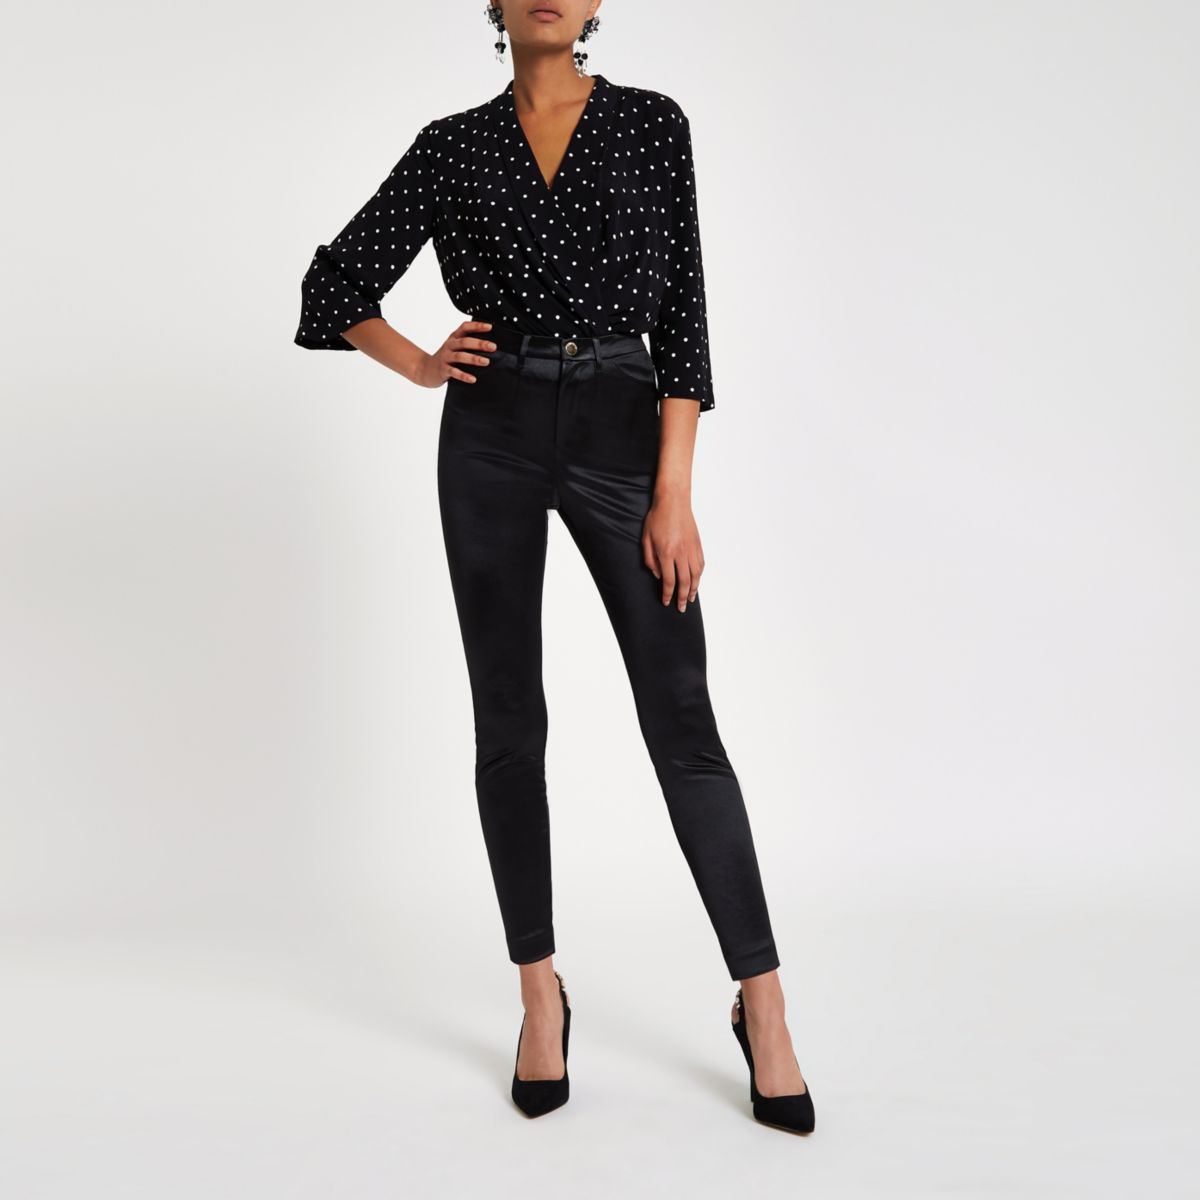 Black high waist skinny disco pants